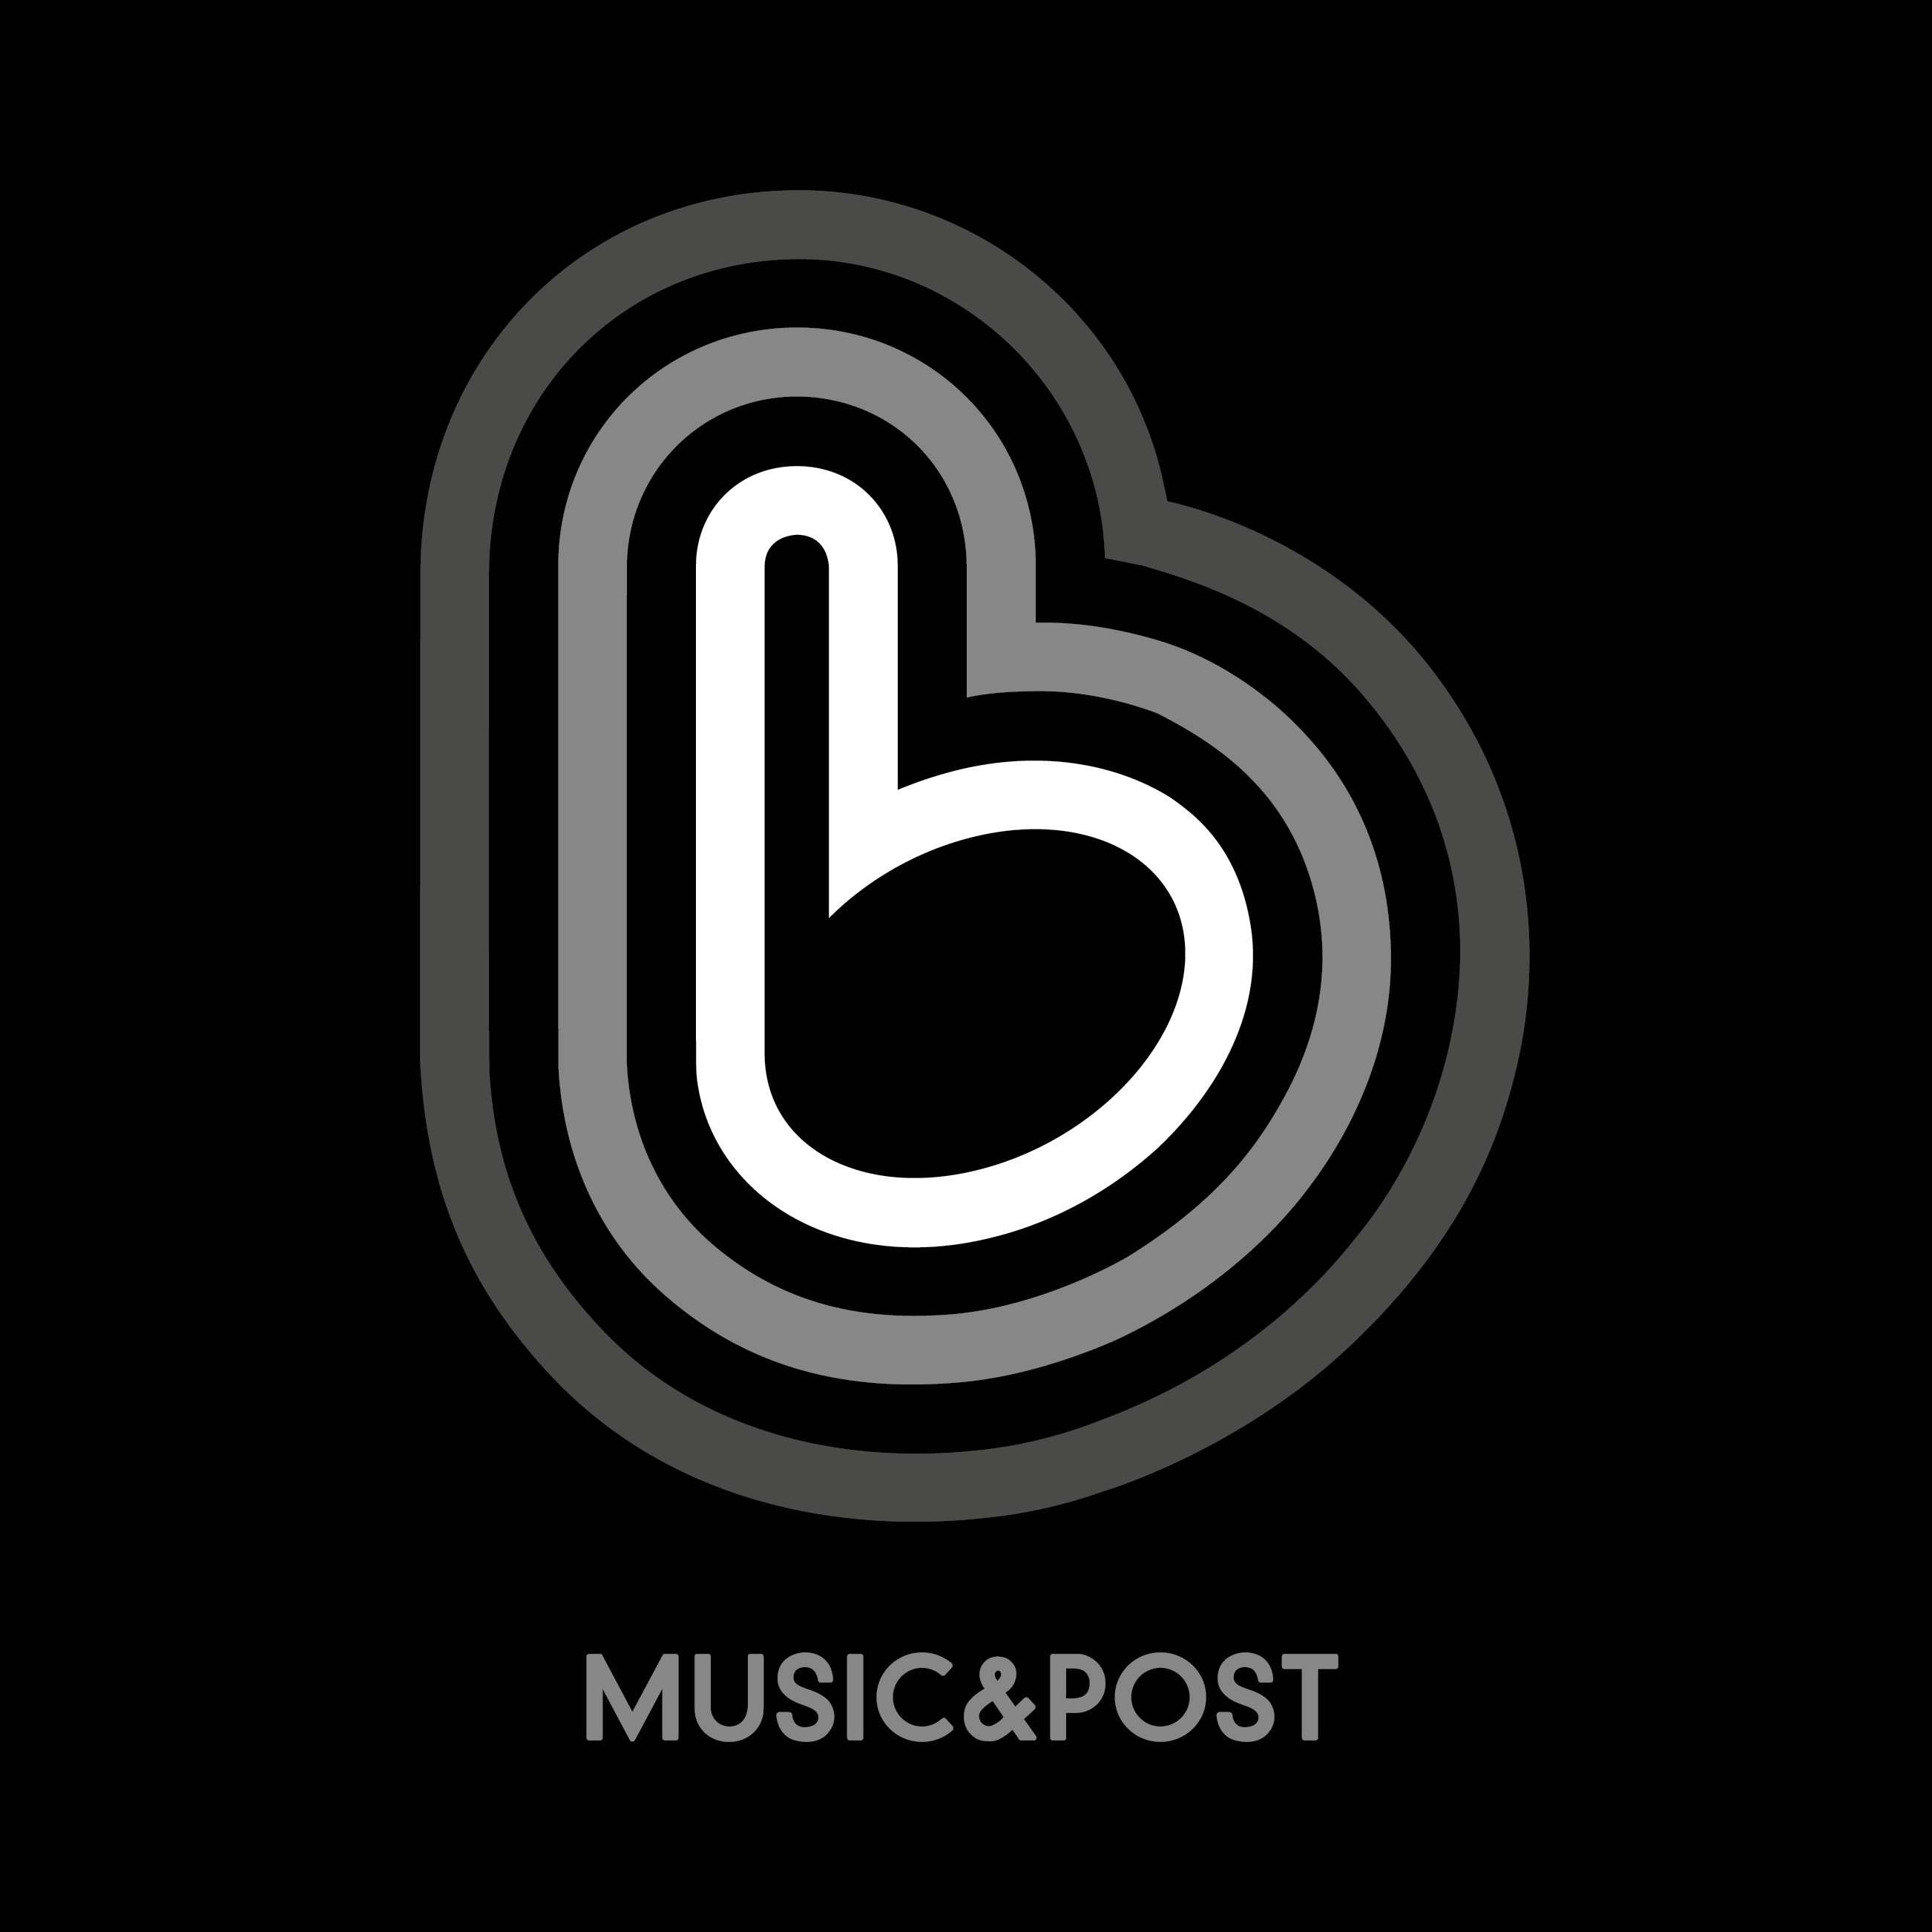 Bigleap Music & Post